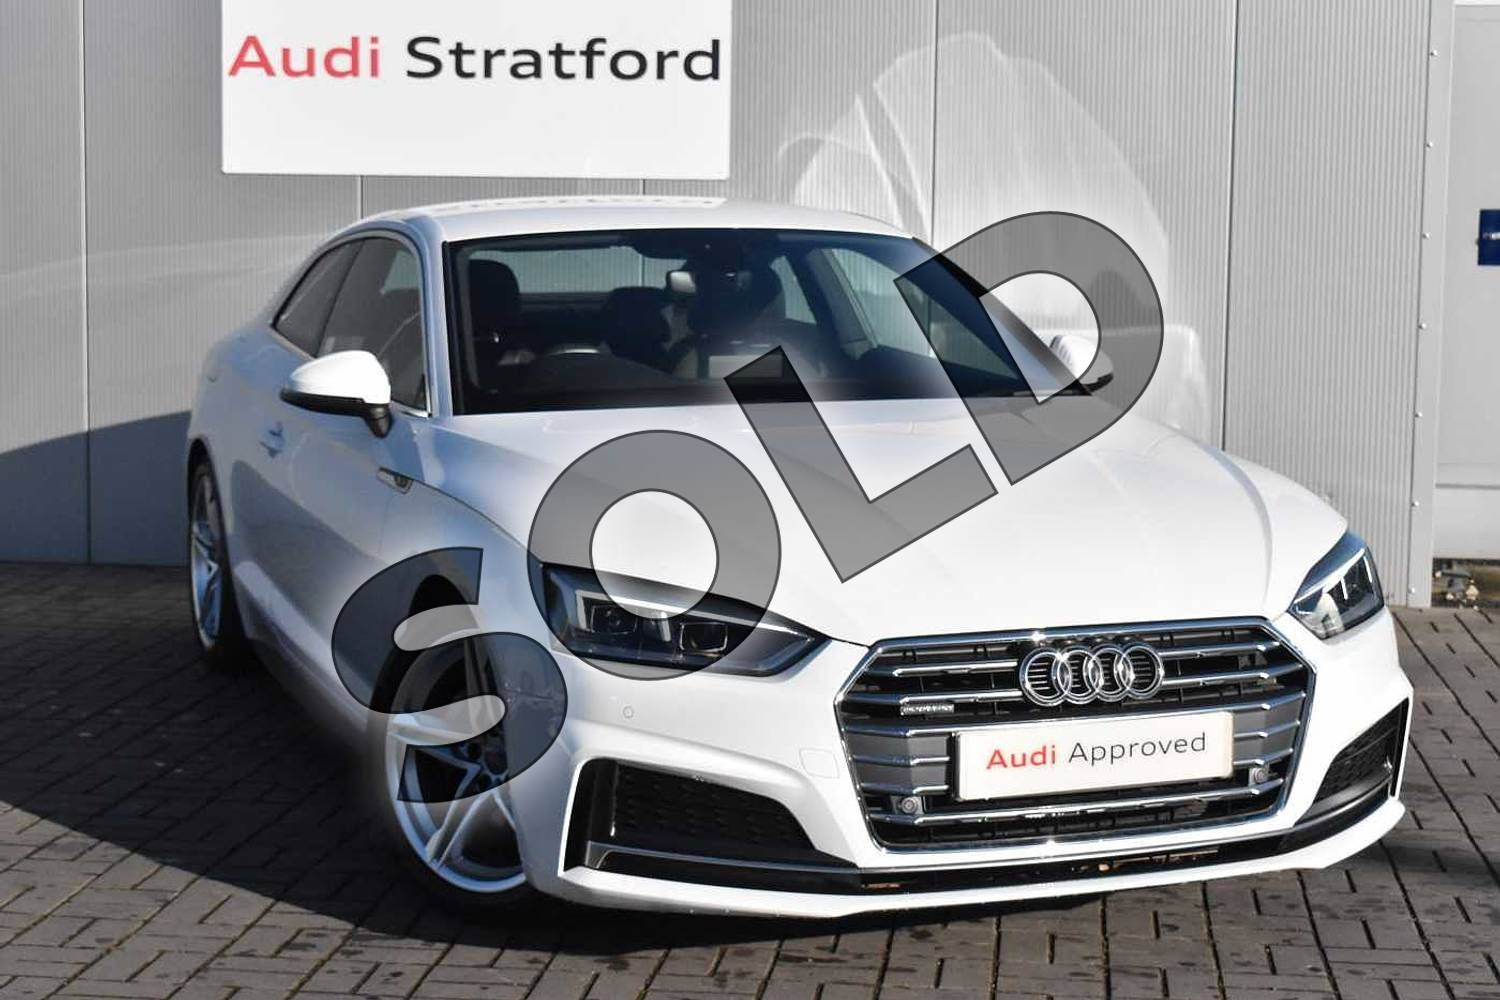 2017 Audi A5 Diesel Coupe 2.0 TDI Quattro S Line 2dr S Tronic in Ibis White at Stratford Audi